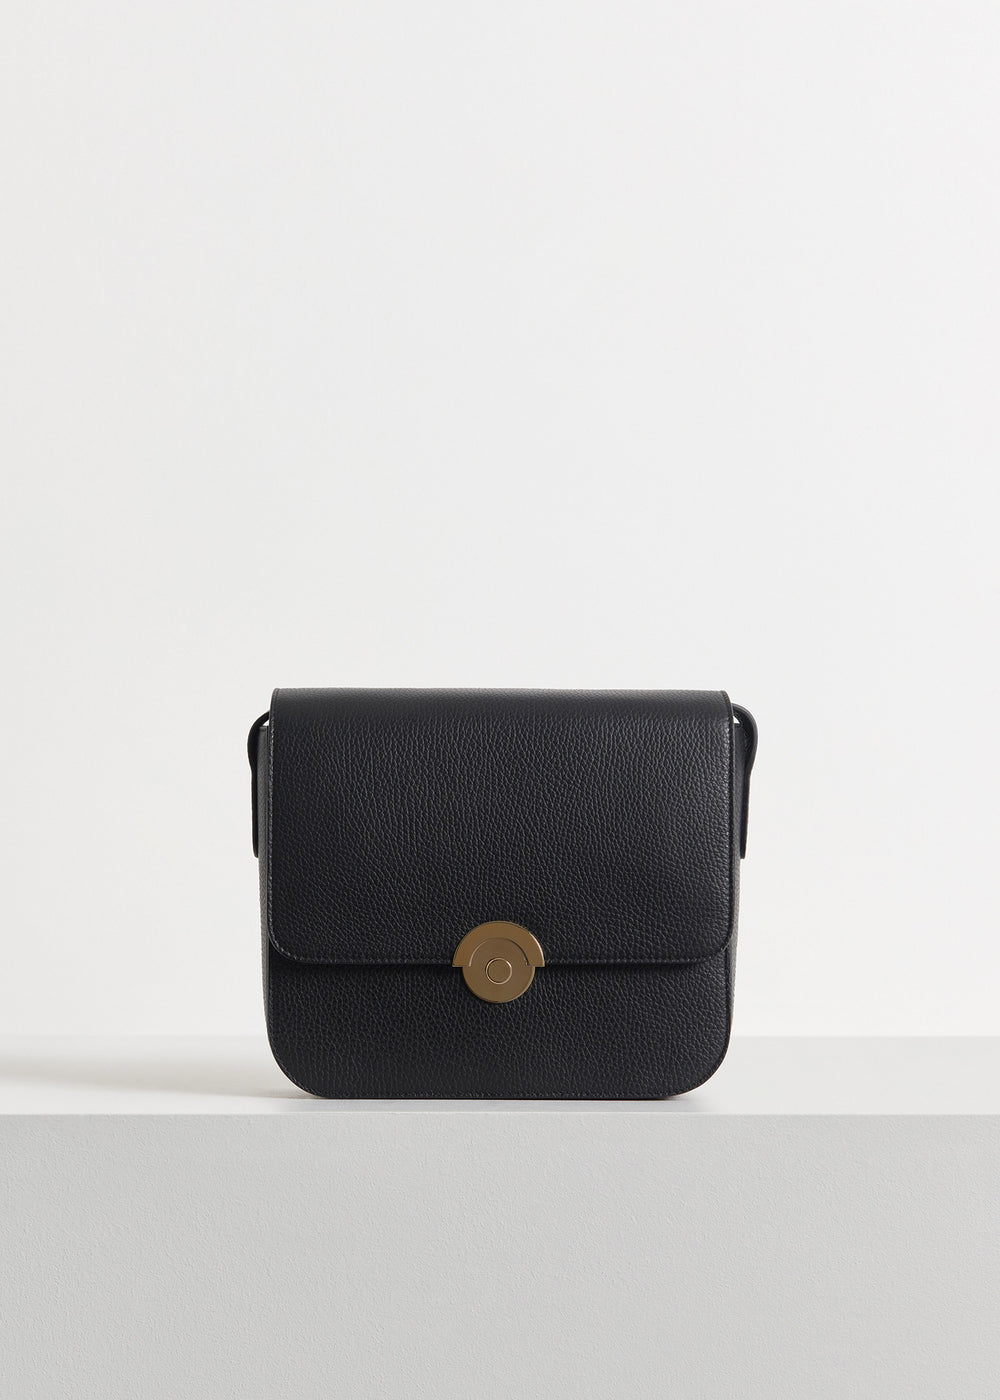 Box Bag in Pebbled Leather - Ivory in Black by Co Collections